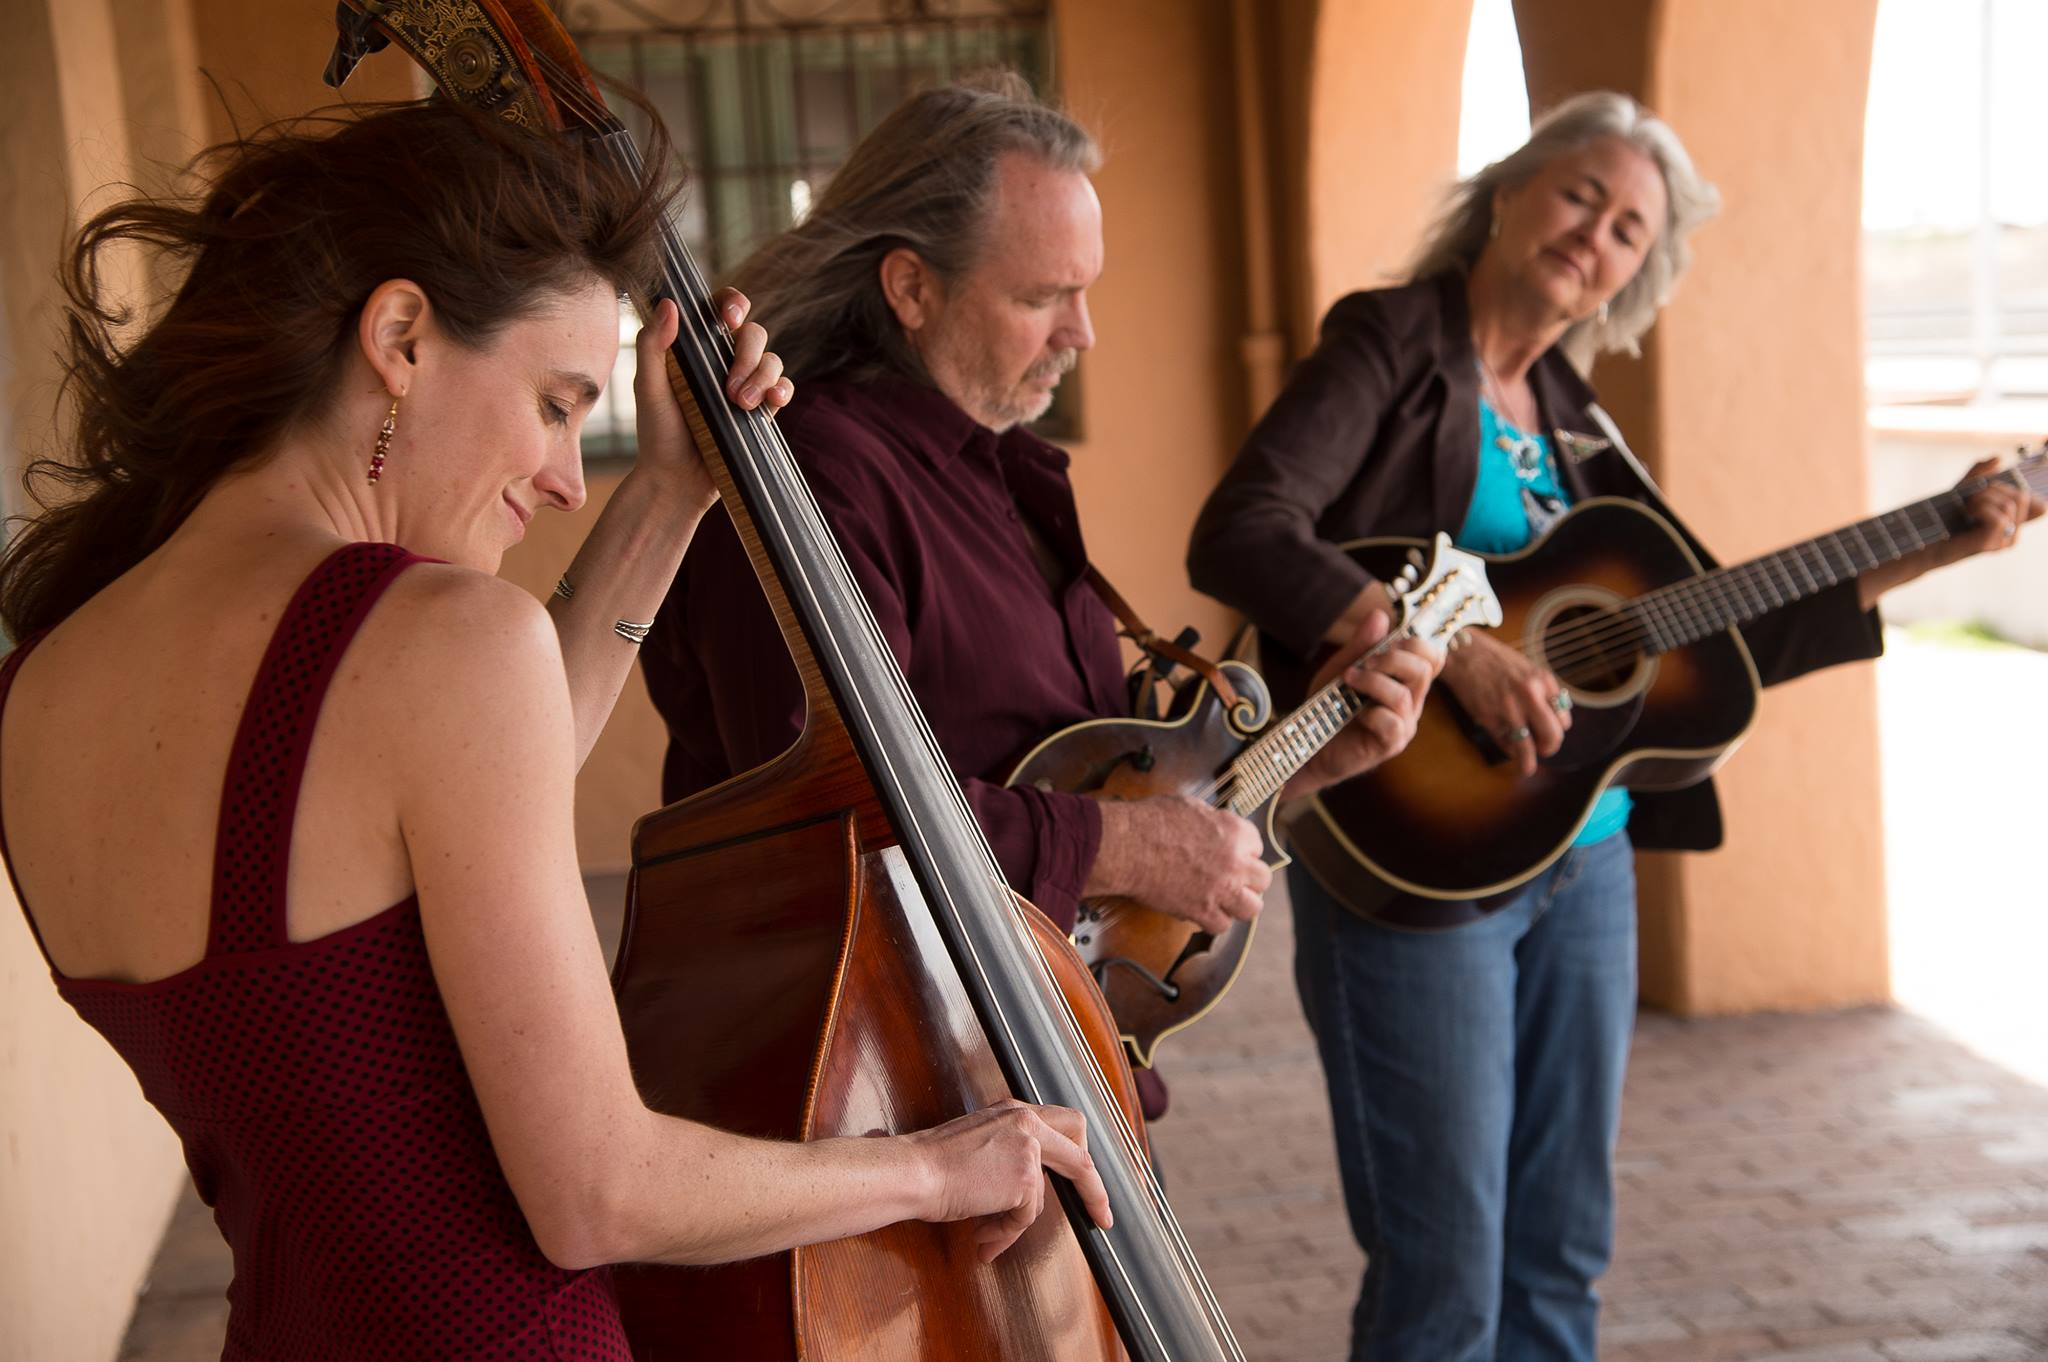 From left, Anne Luna, Steve Smith, and Chris Sanders are Hard Road Trio.